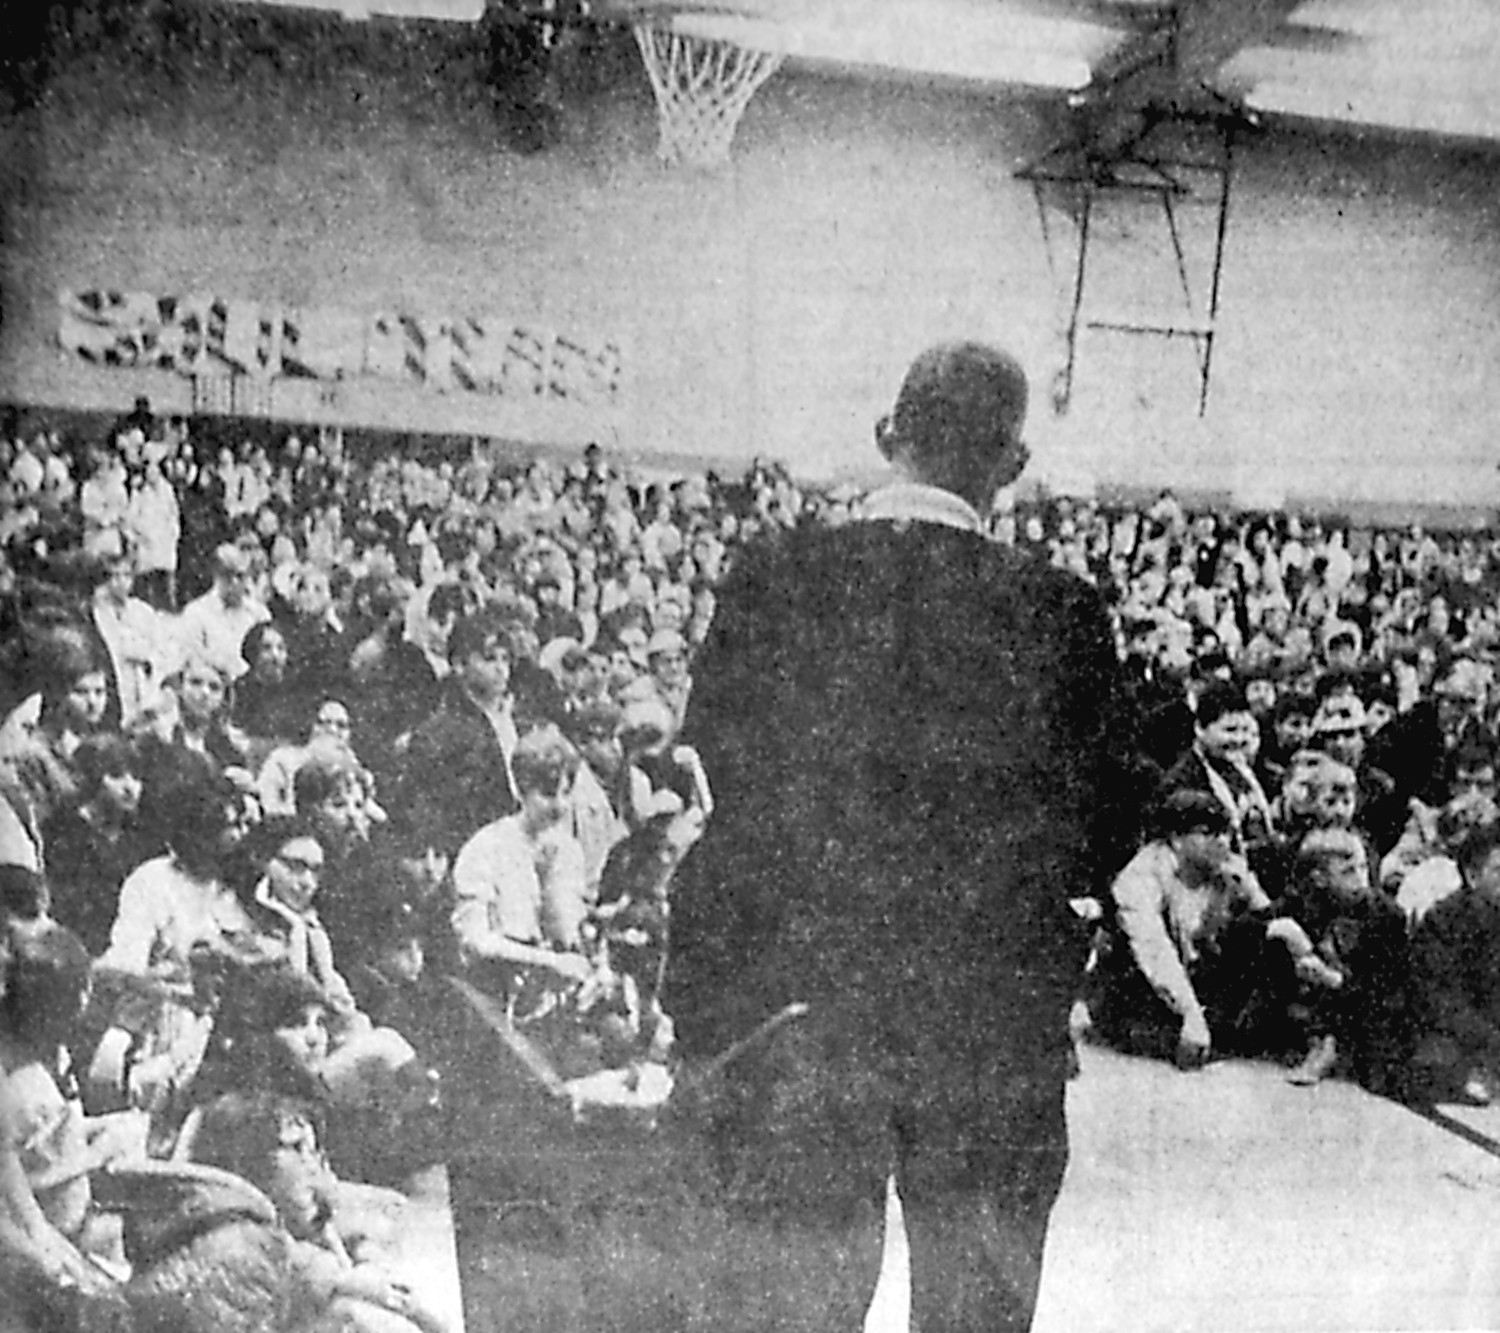 A real welcome home was extended Saturday afternoon, March 23, 1968, to the Middletown Blue Raiders, who won the PIAA Class B State Championship in a final game with East Brady at Pittsburgh the night before. Local folks literally by the thousands turned out to greet the team. The high point, following a parade about town, was in the gym where Principal Edward Brunner, shown with back to camera, introduced the personnel to a record crowd.